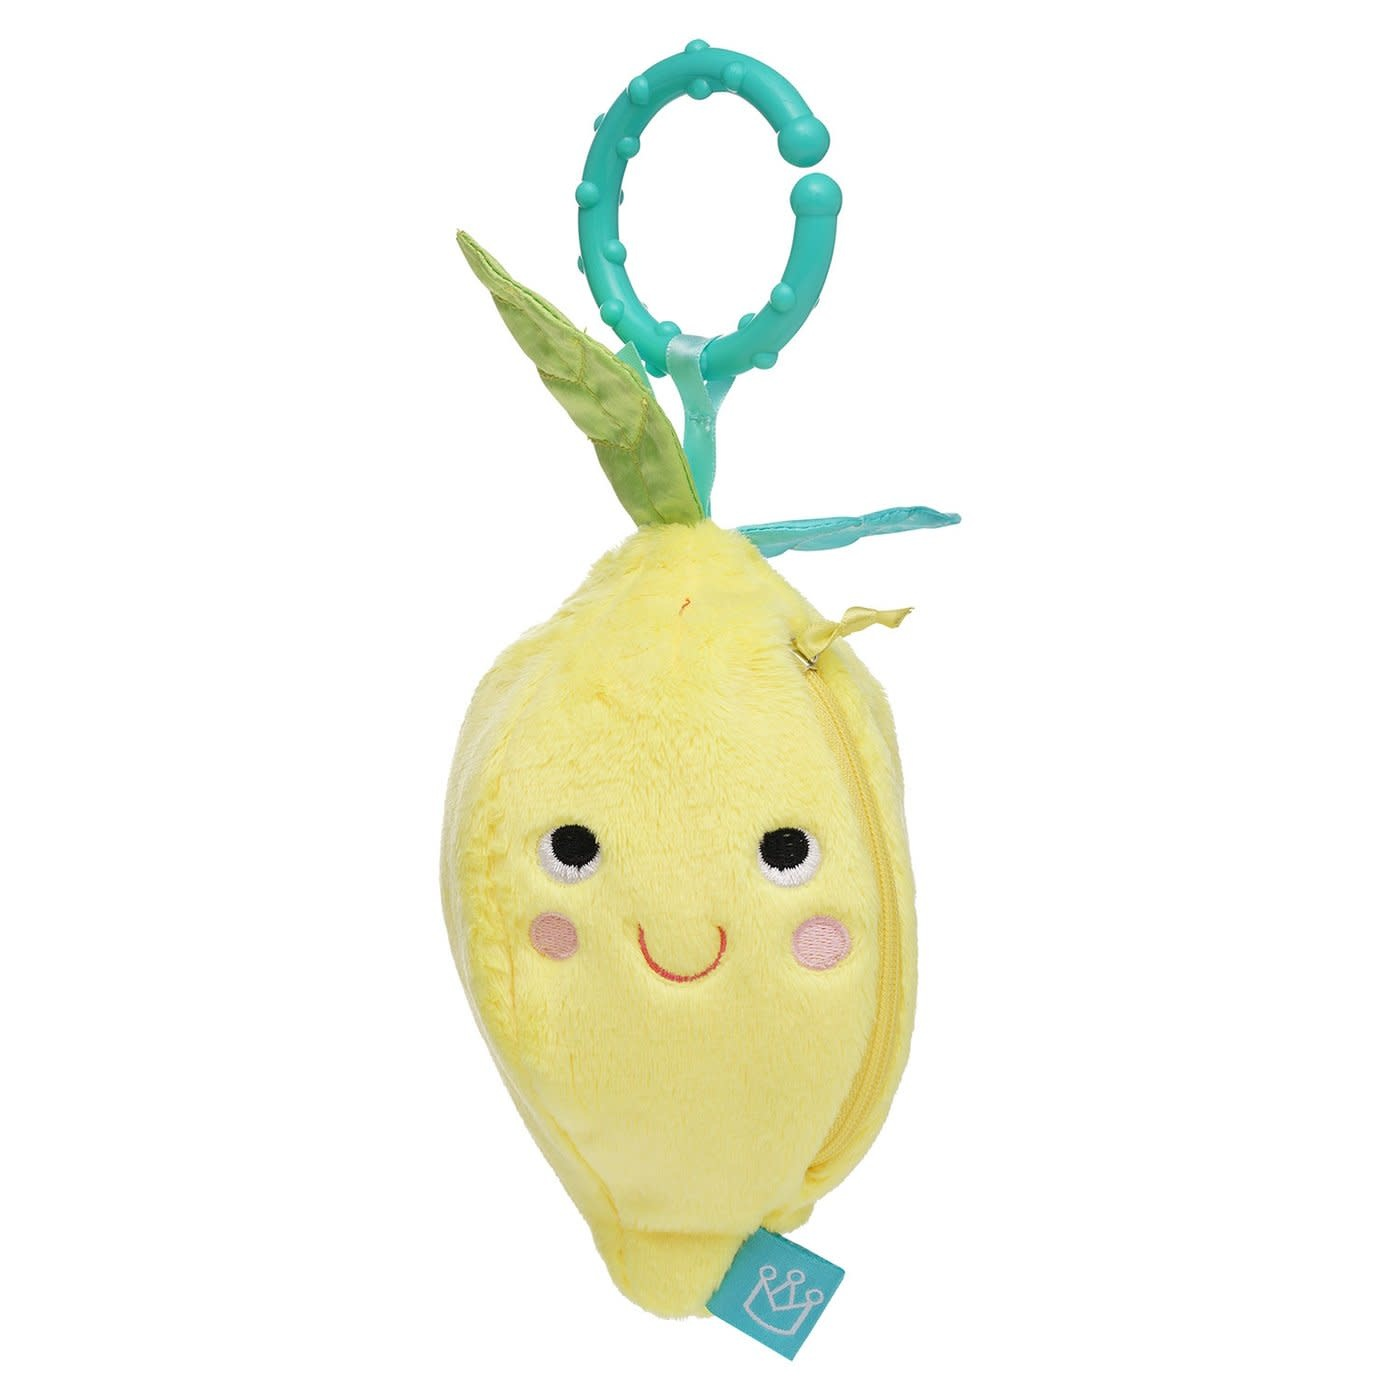 Manhattan Toys Mini-Apple Farm Lemon Take Along Toy